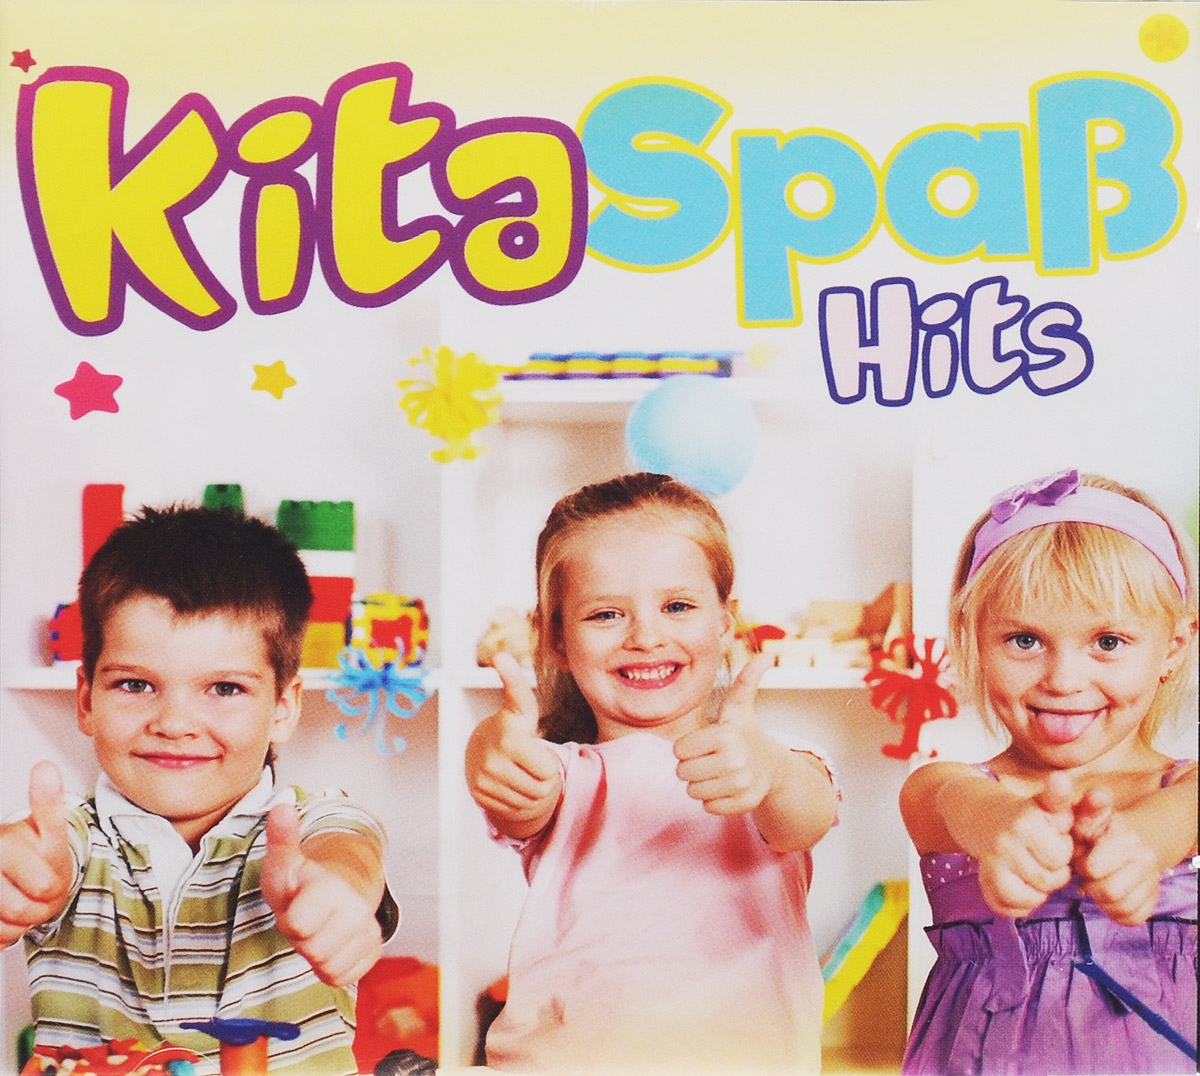 Kinderchor Kita Spass Hits 15724 подвес kita